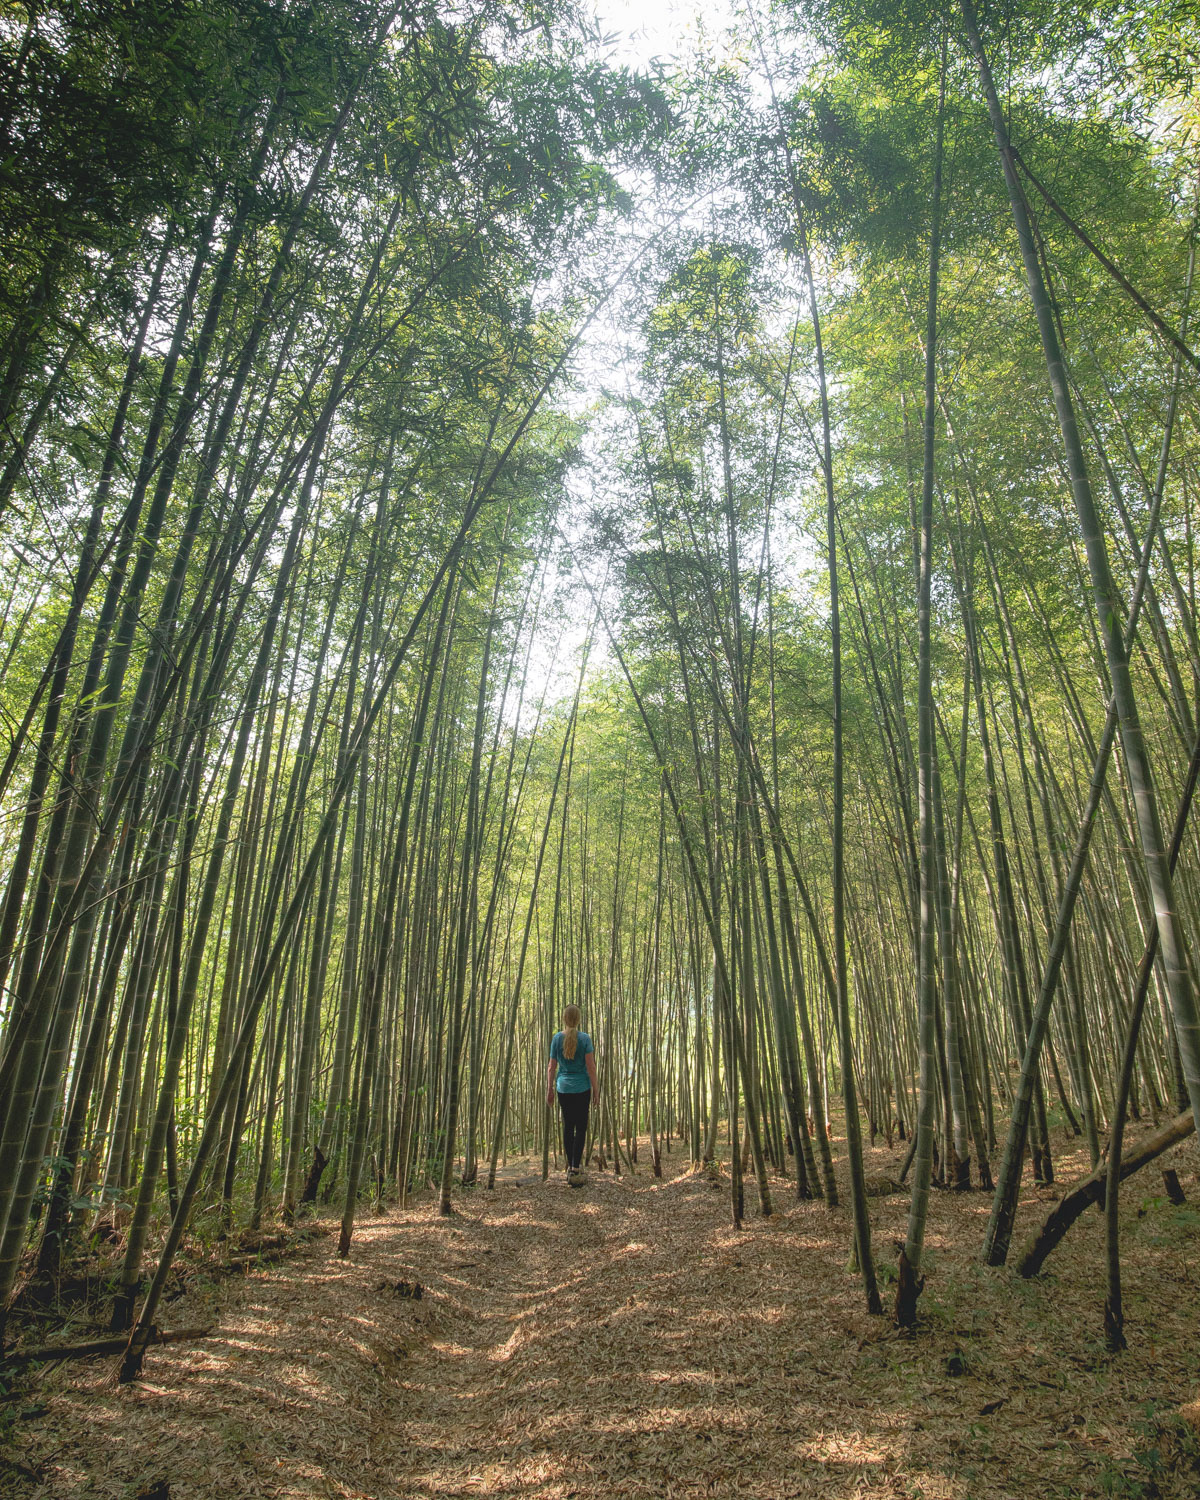 The Bamboo forests near Ruelli